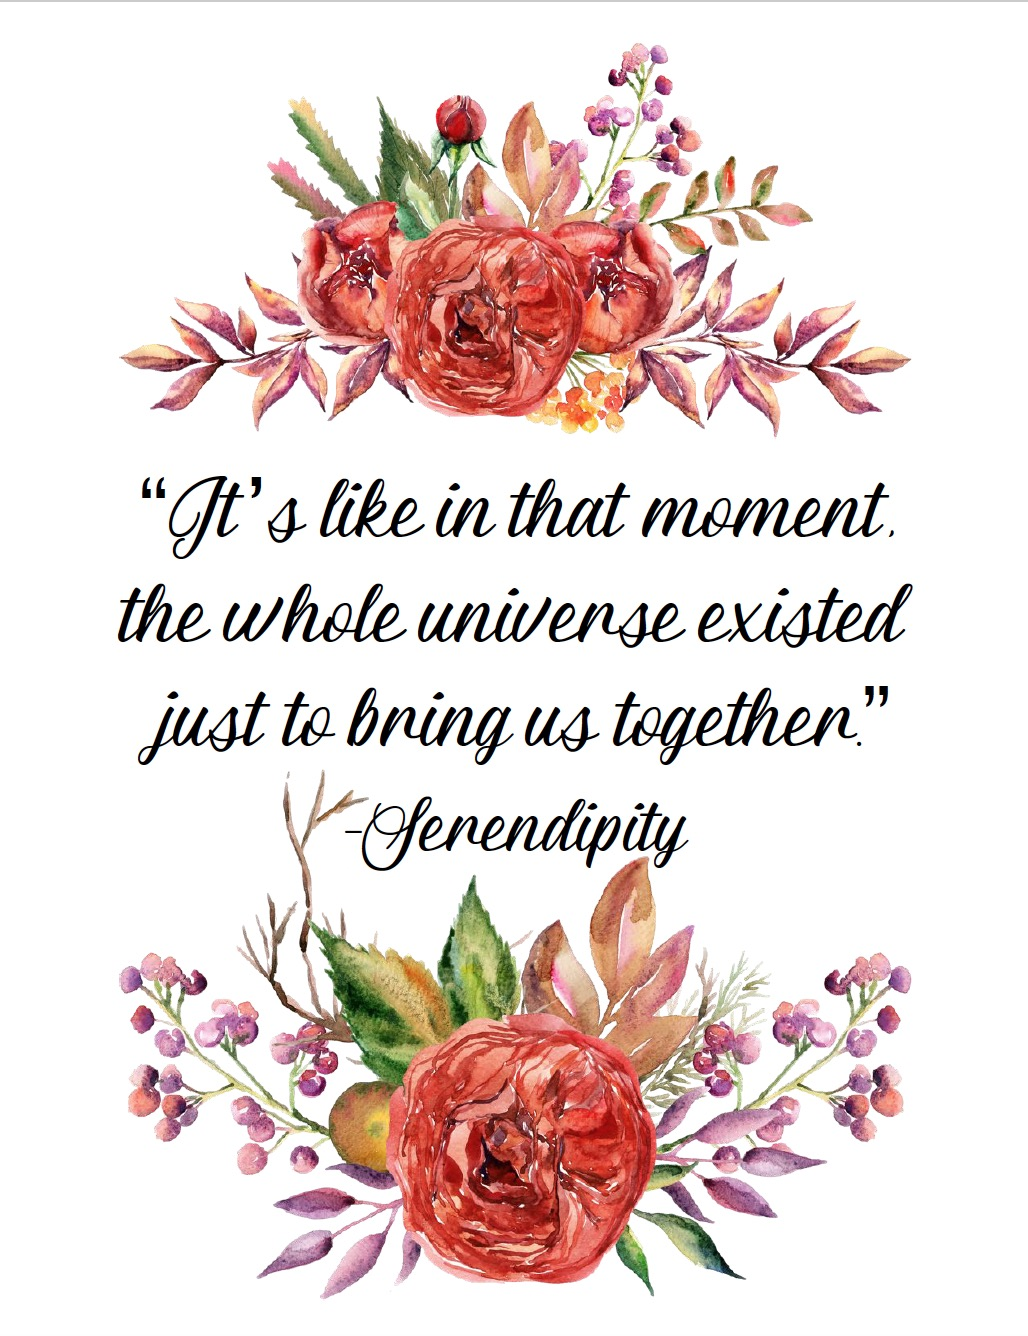 "Free Printable Romantic Movie Quotes: 6 Designs. ""It's like in that moment the whole universe existed just to bring us together"" from Serendipity."